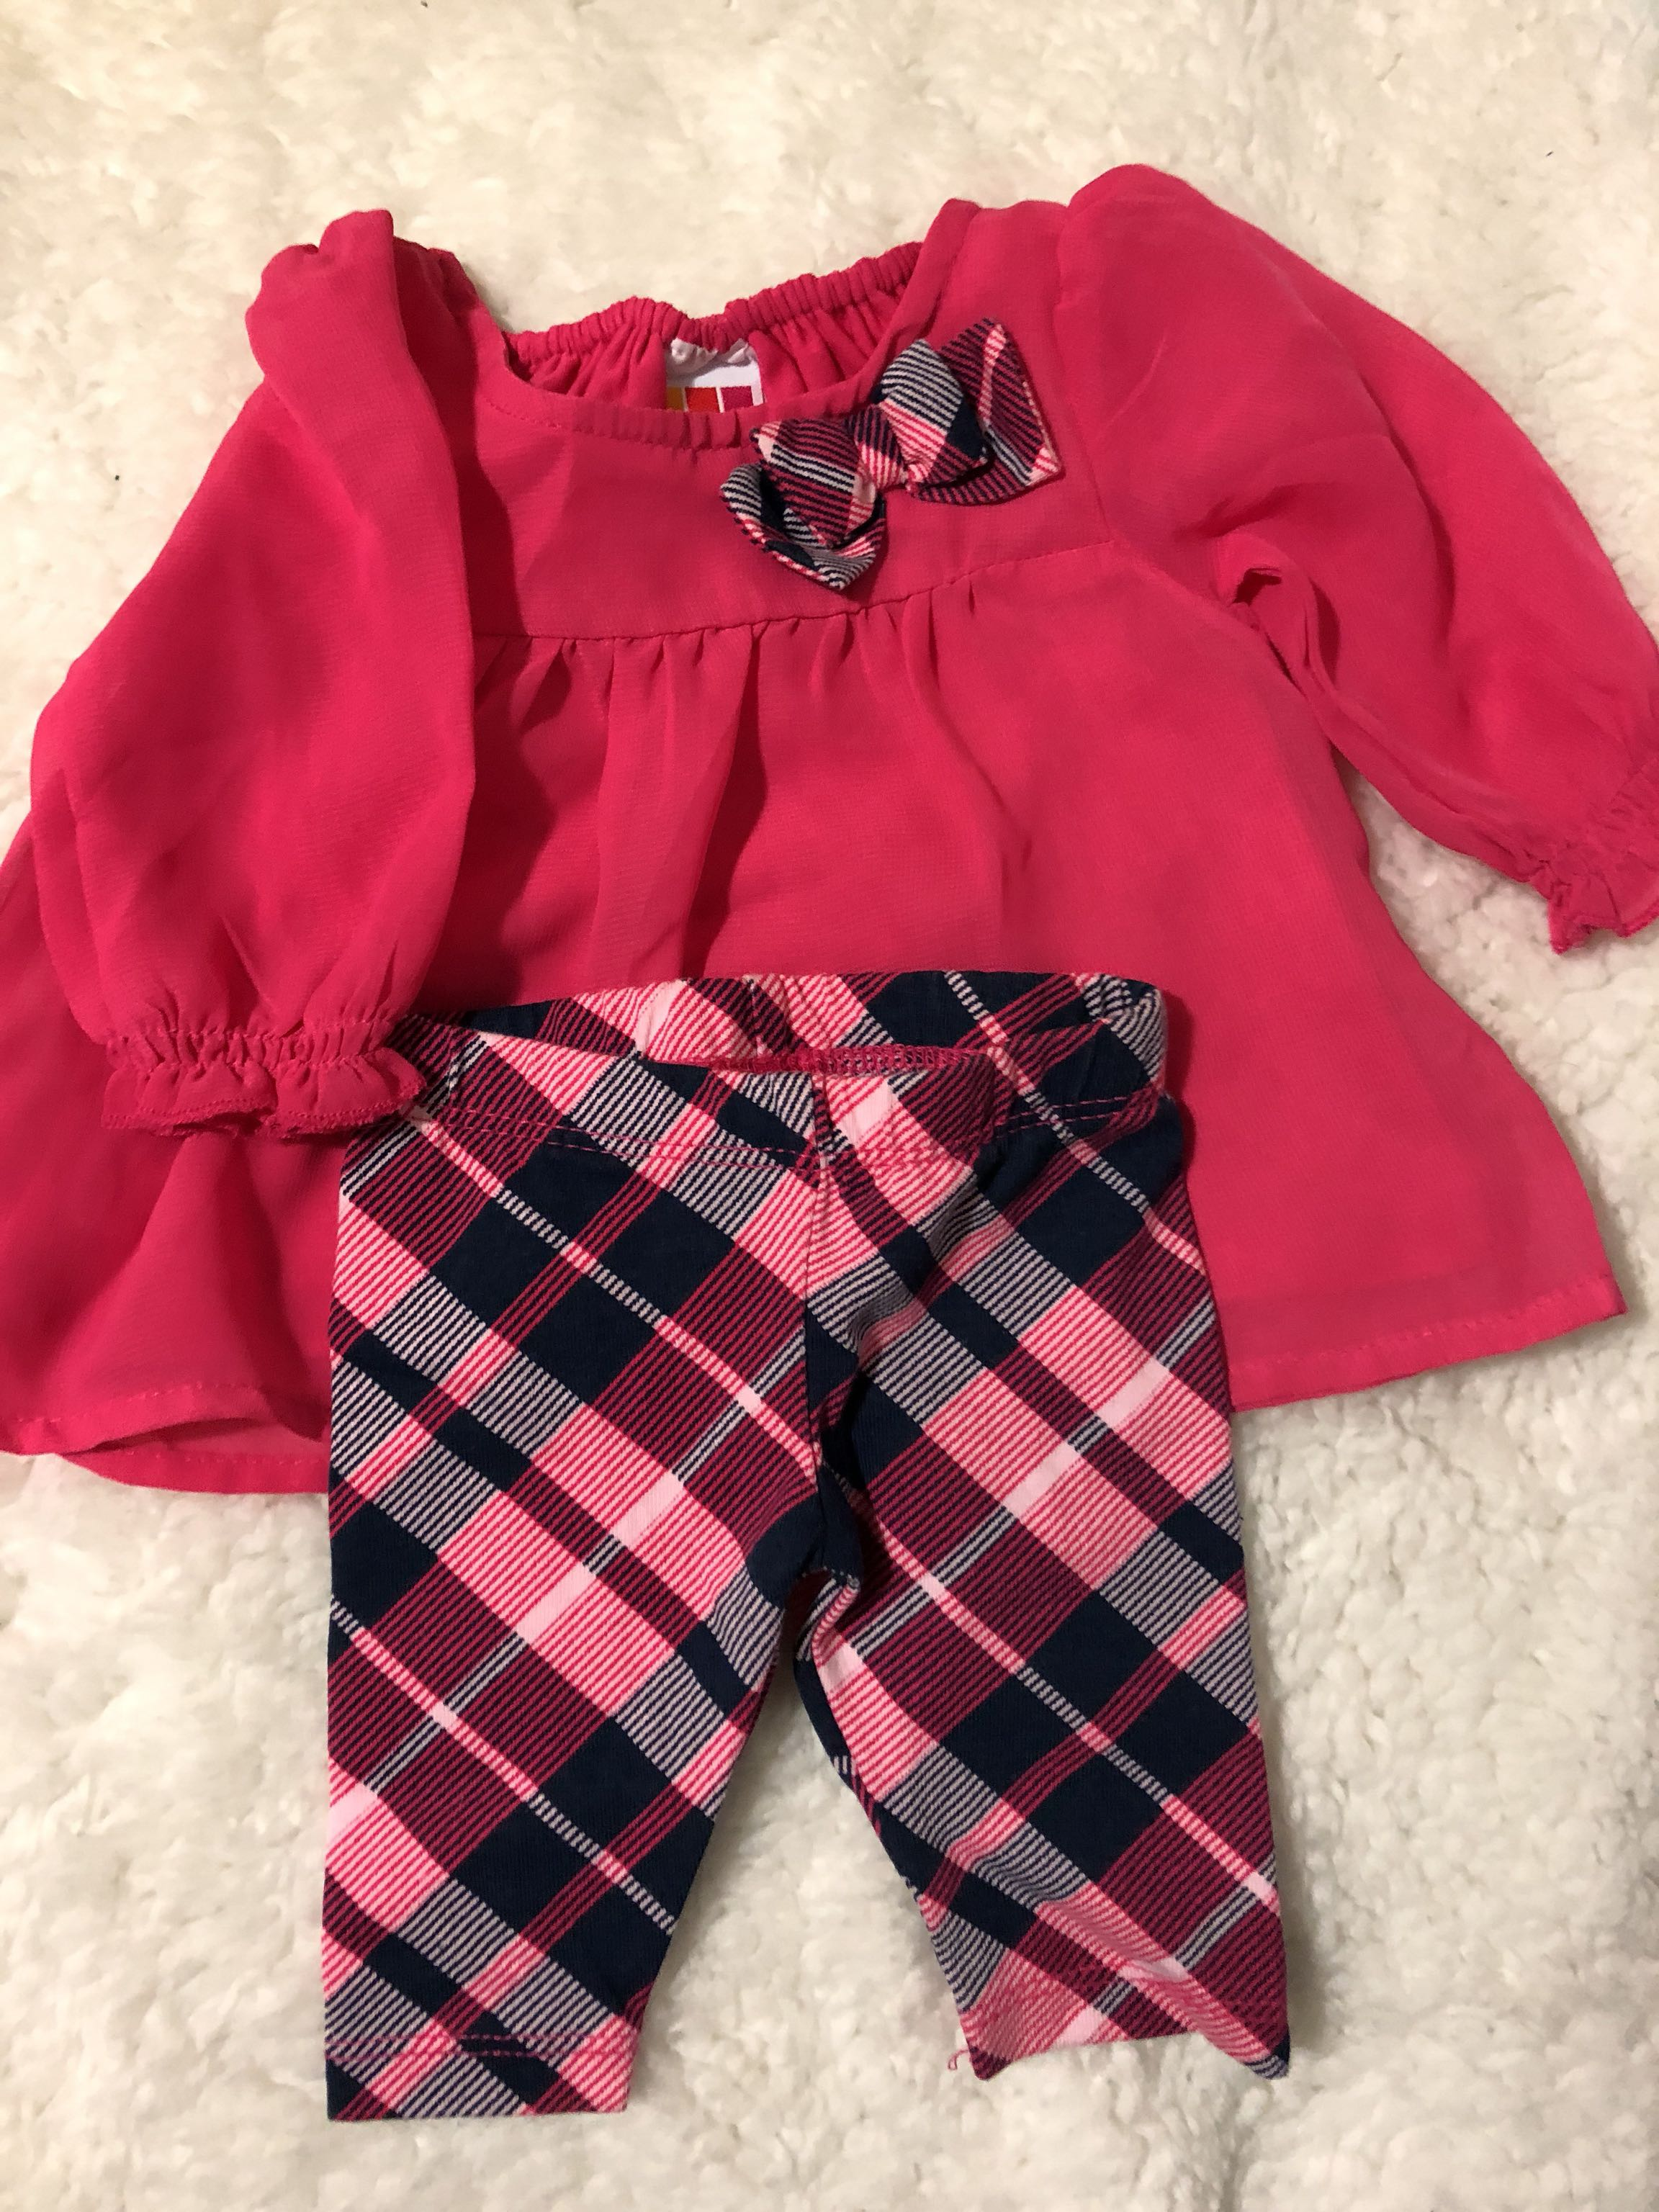 NWOT NB baby girl outfit